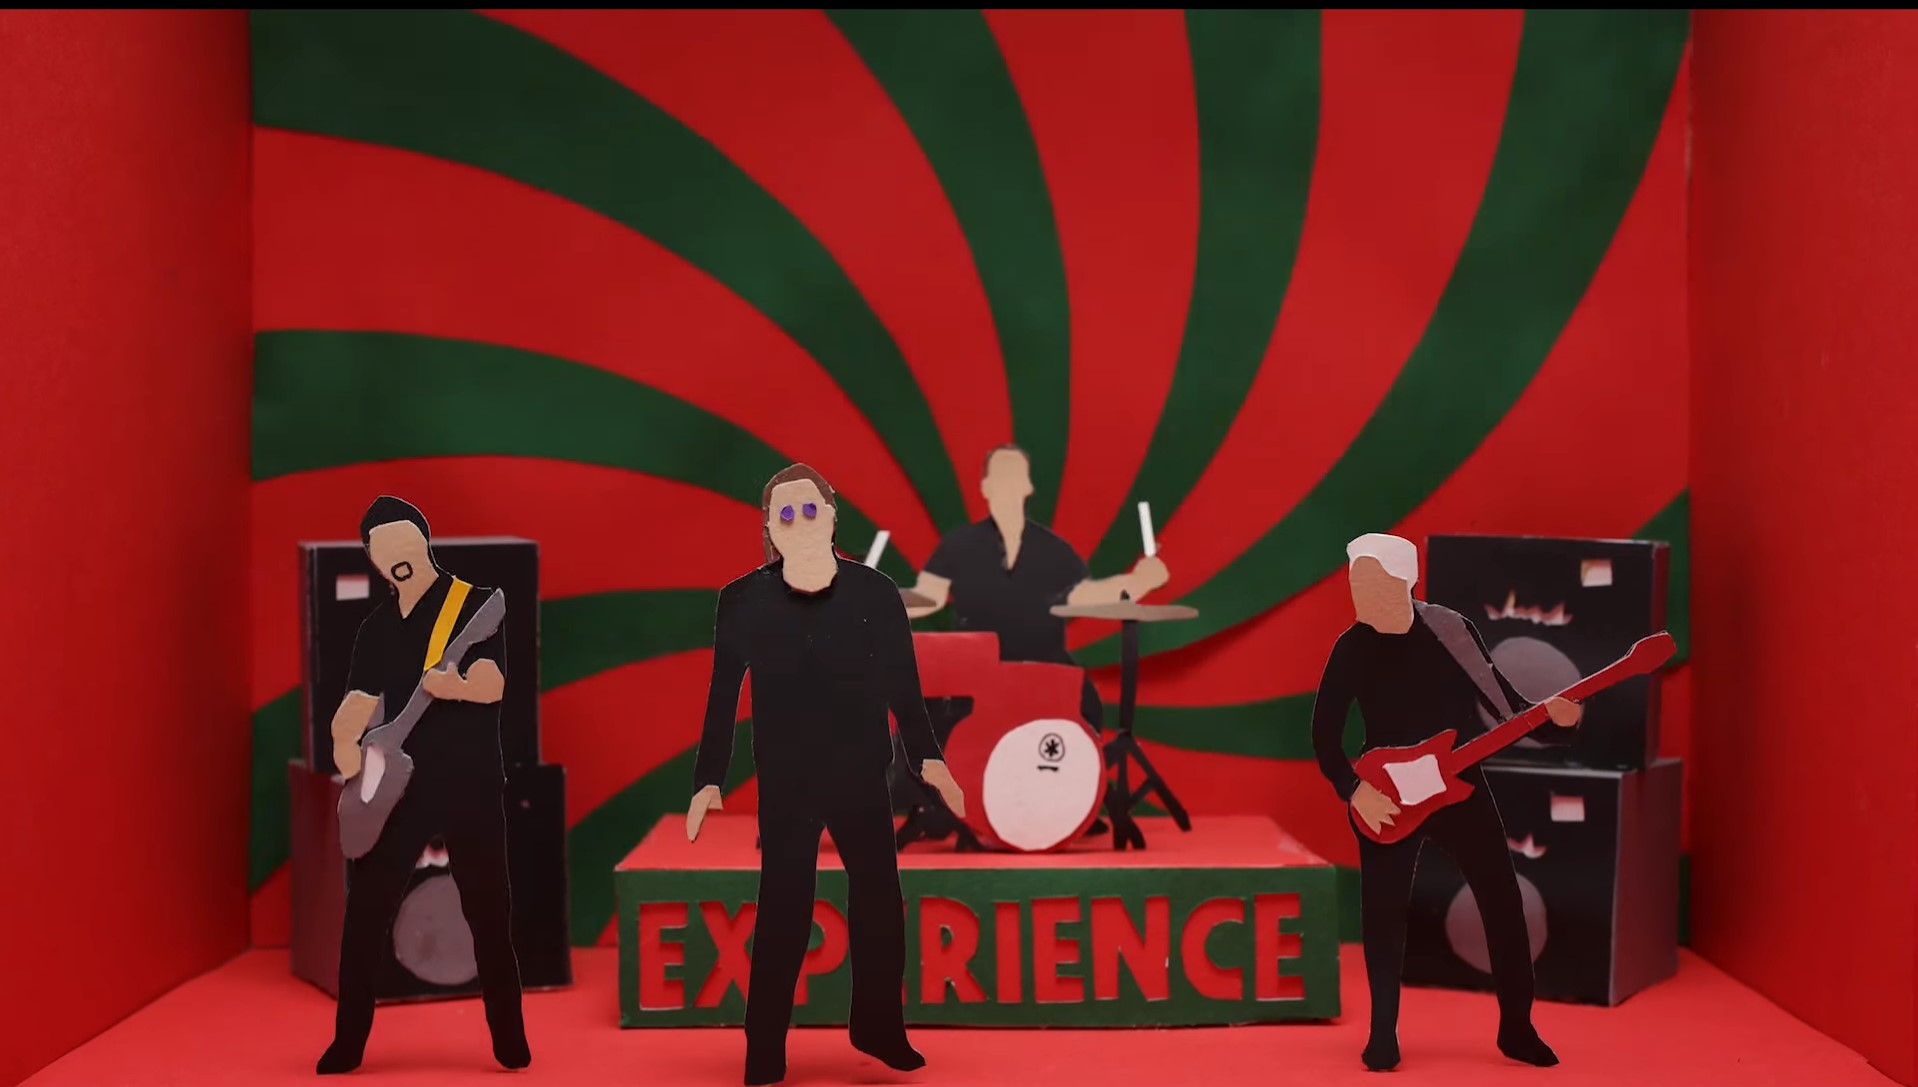 La innovación visual en Get out of your own way de U2… y muchos otros más